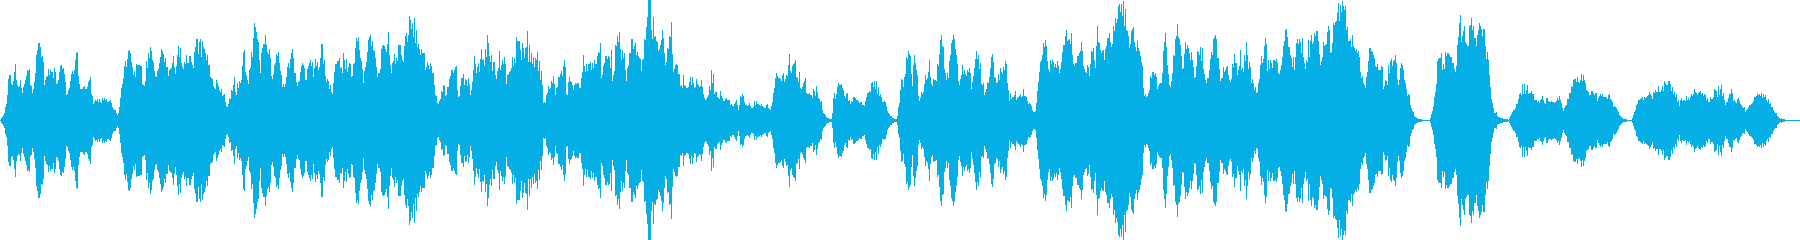 Andante Cantabile's reproduced waveform